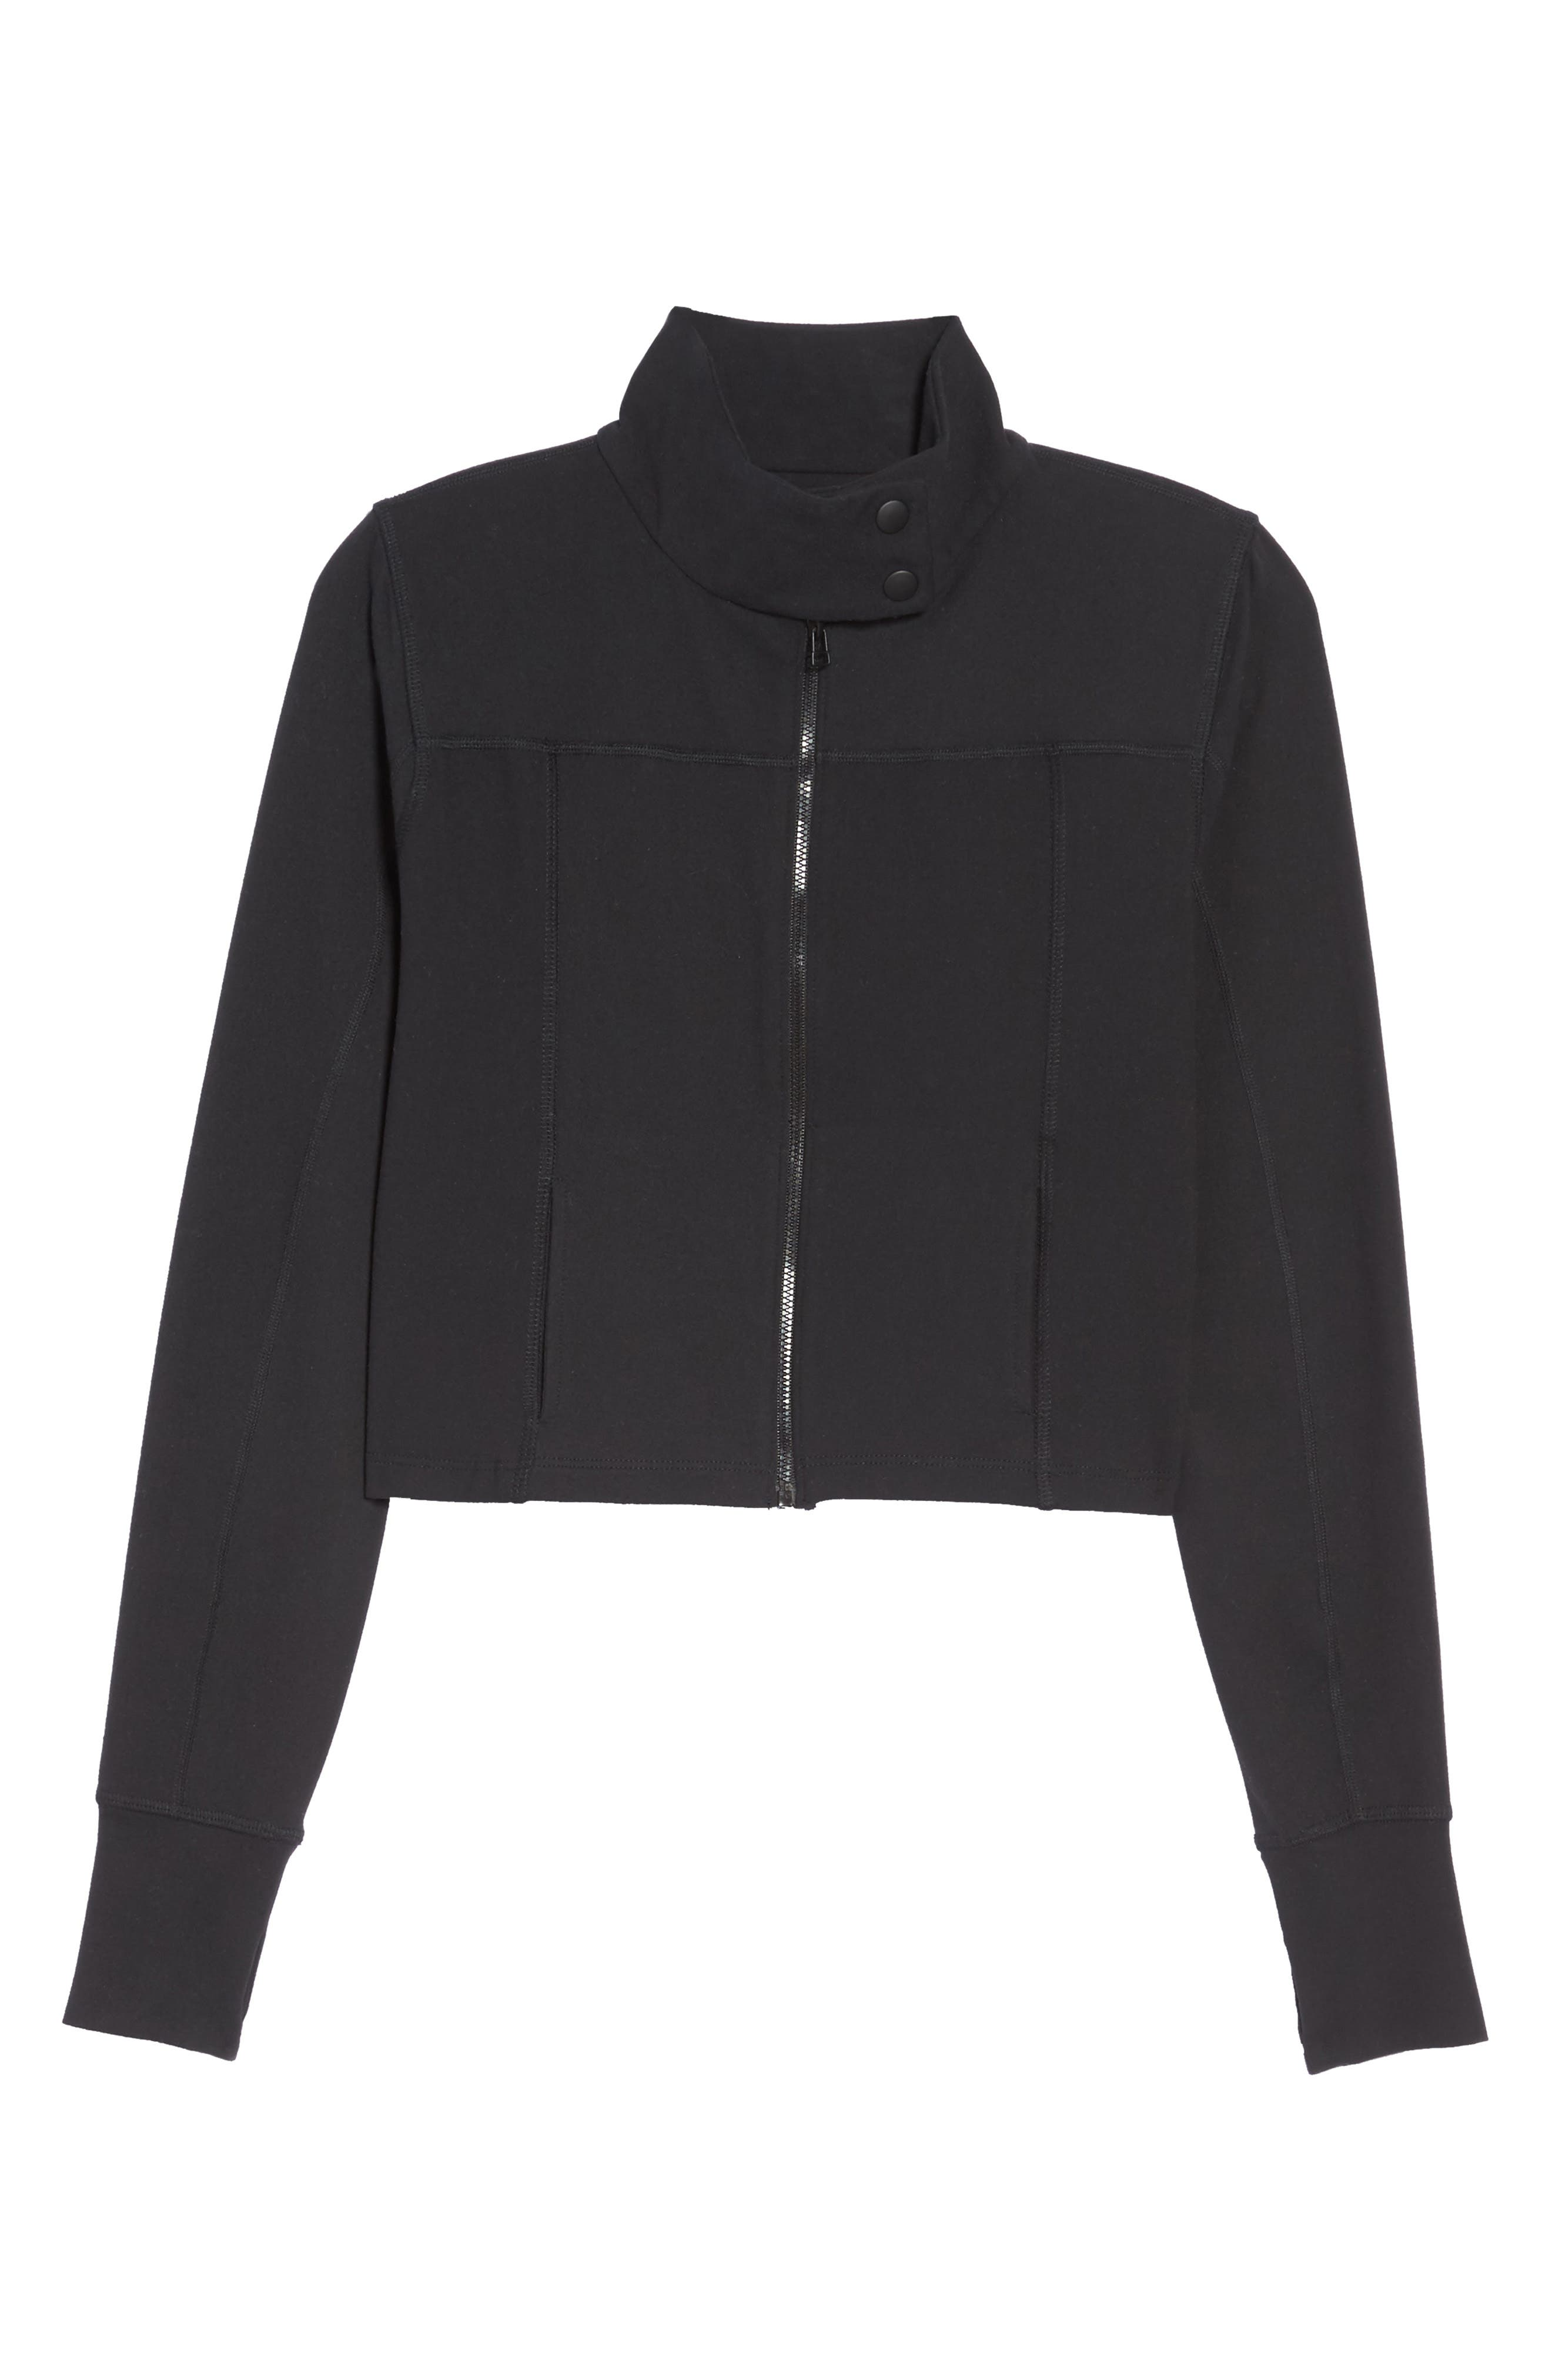 Boxed In Crop Jacket,                             Alternate thumbnail 7, color,                             002